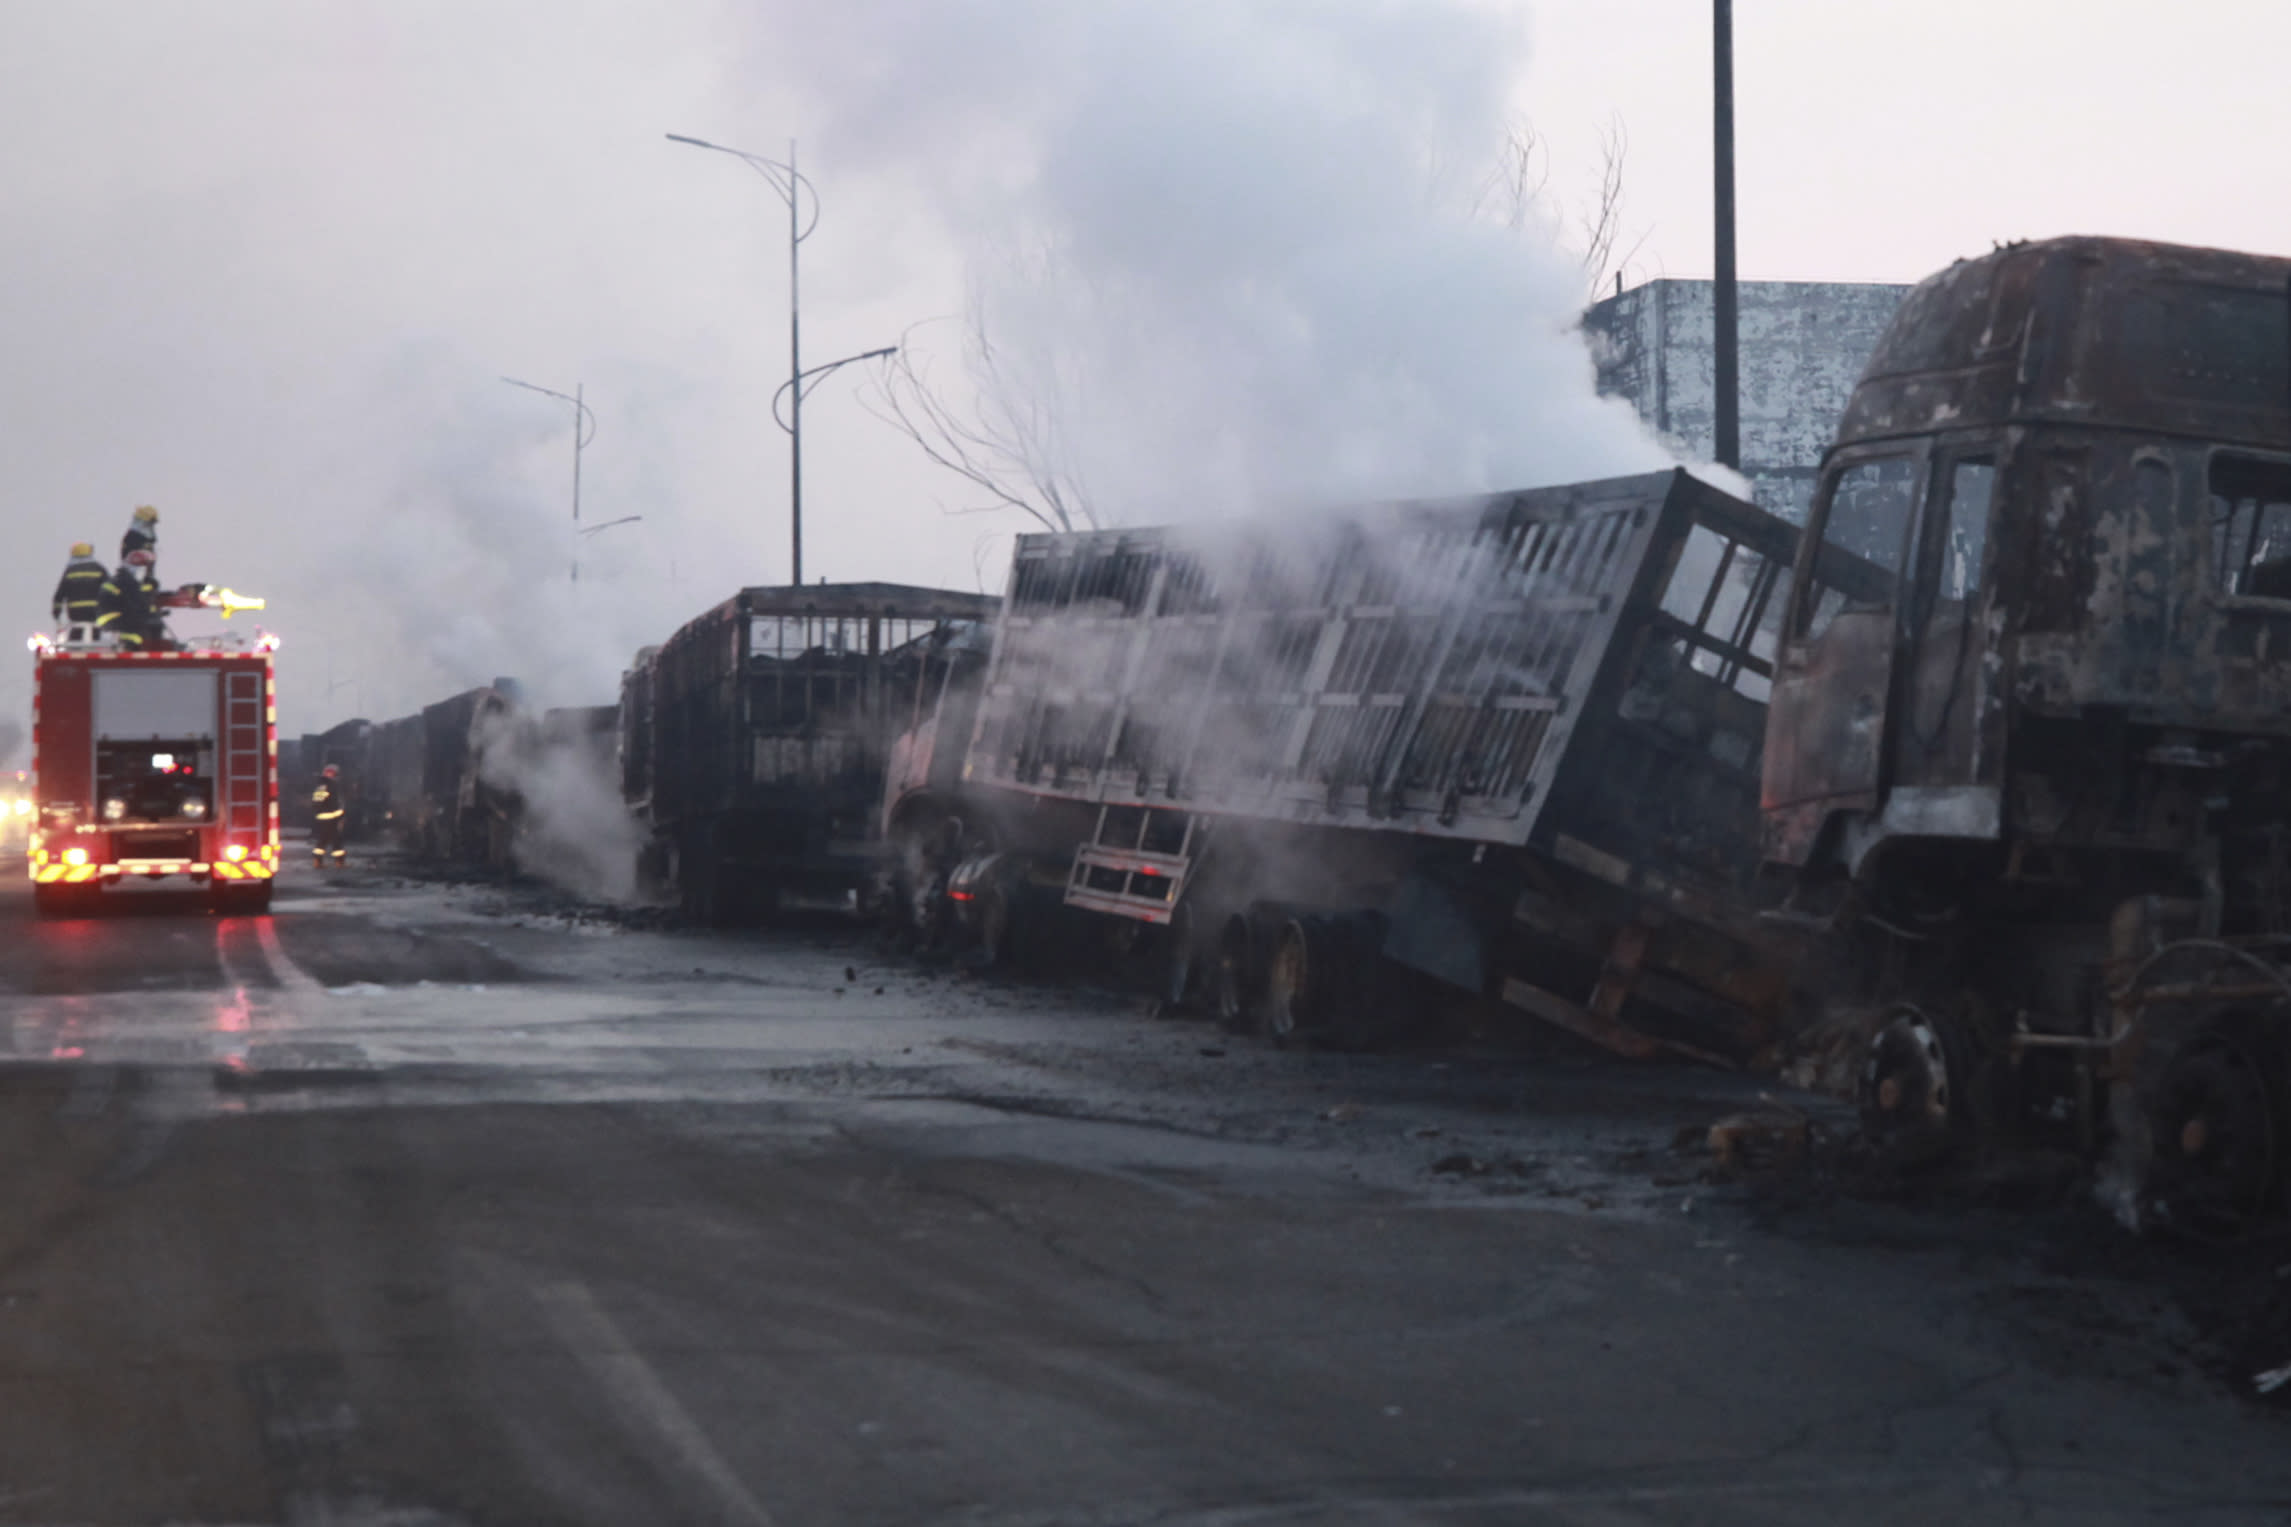 In this photo released by Xinhua News Agency, firefighters try to extinguish burning vehicles in the aftermath of an explosion at a plant operated by the Hebei Shenghua Chemical Industry Co. Ltd that destroyed dozens of vehicles nearby on Wednesday, Nov. 28, 2018 in Zhangjiakou city, northeastern China's Hebei province.(Xinhua via AP)